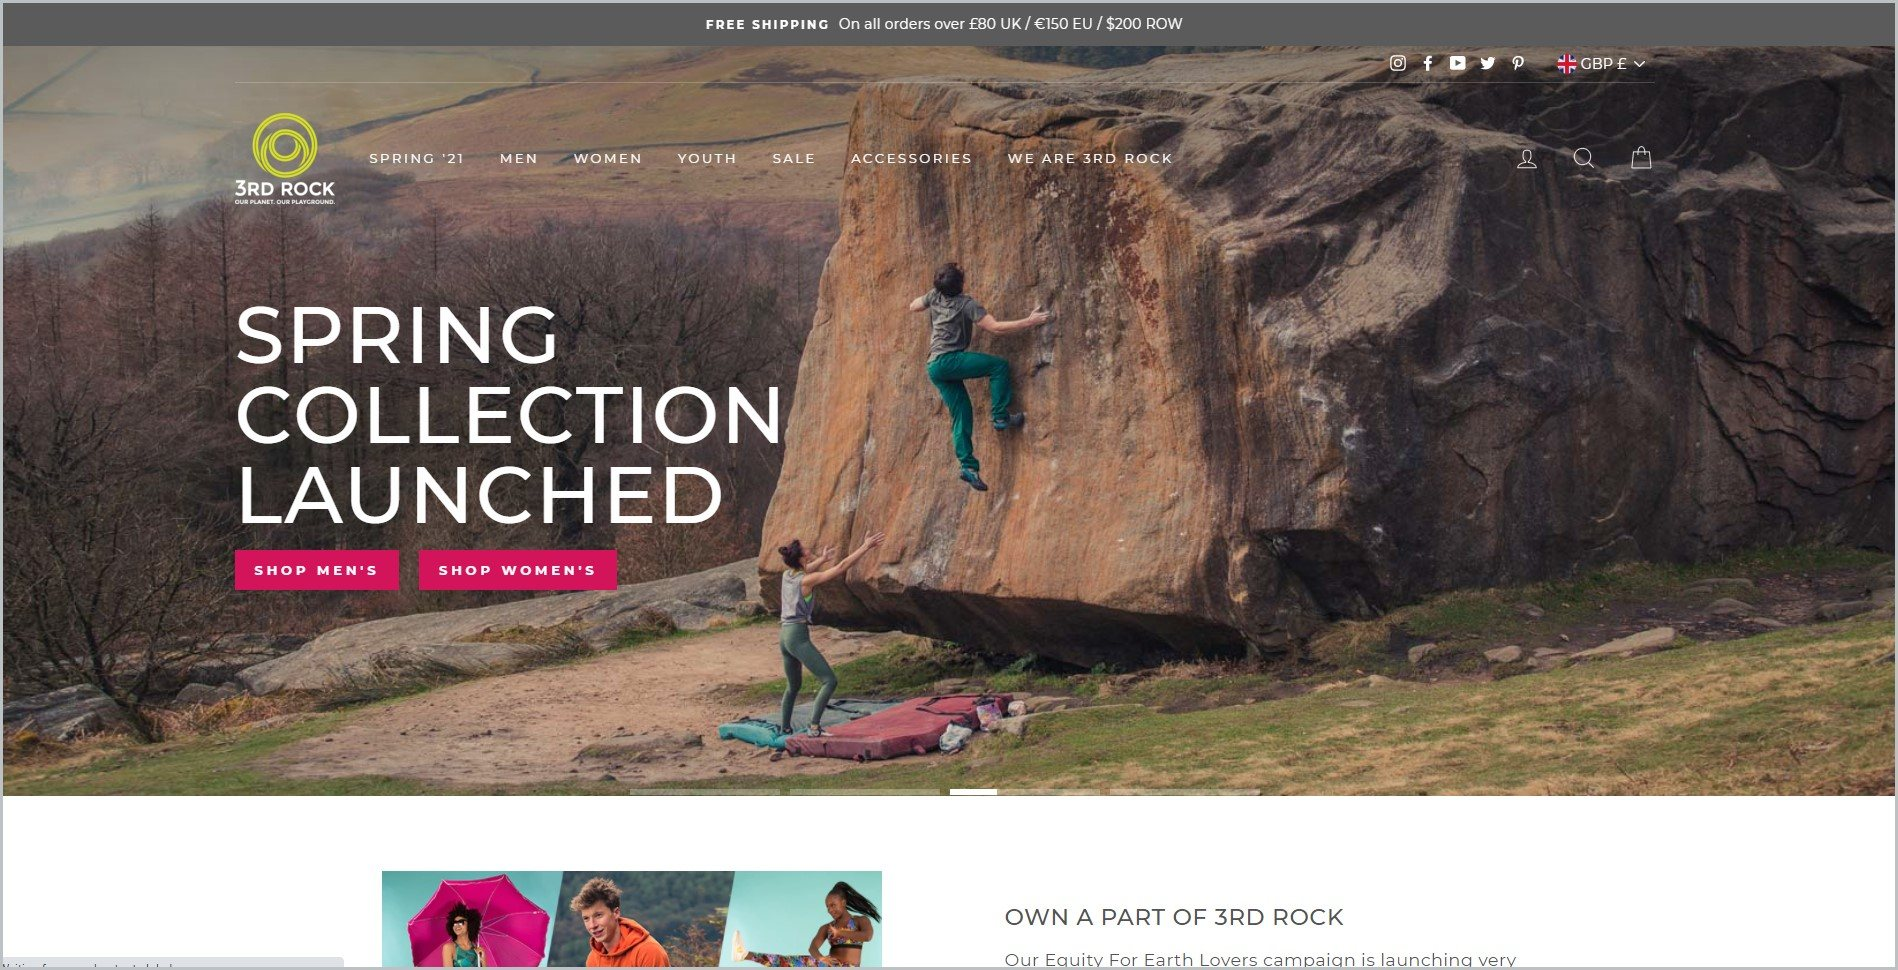 screenshot of 3RD ROCK homepage, with grey announcement bar, it shows the website's name and logo with the main navigation bar, it features a couple of wall climbers out in the nature